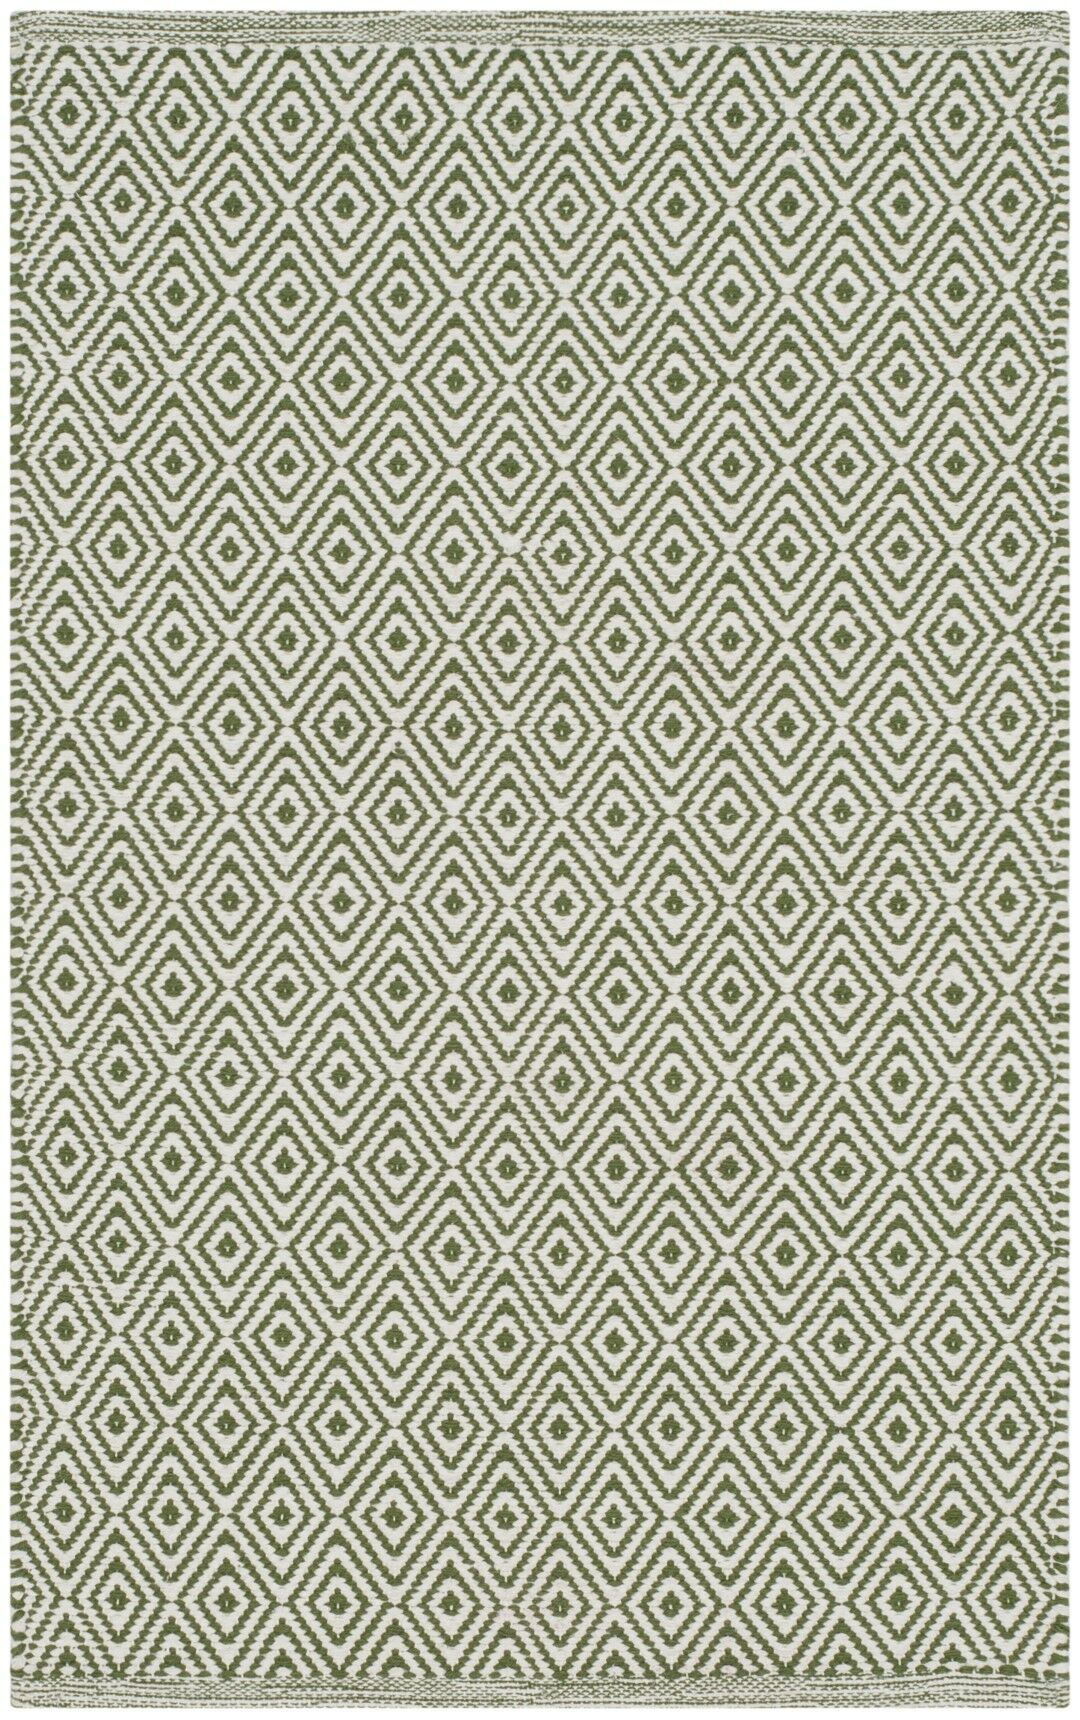 Shevchenko Place Hand-Woven Ivory/Green Area Rug Rug Size: Round 4'